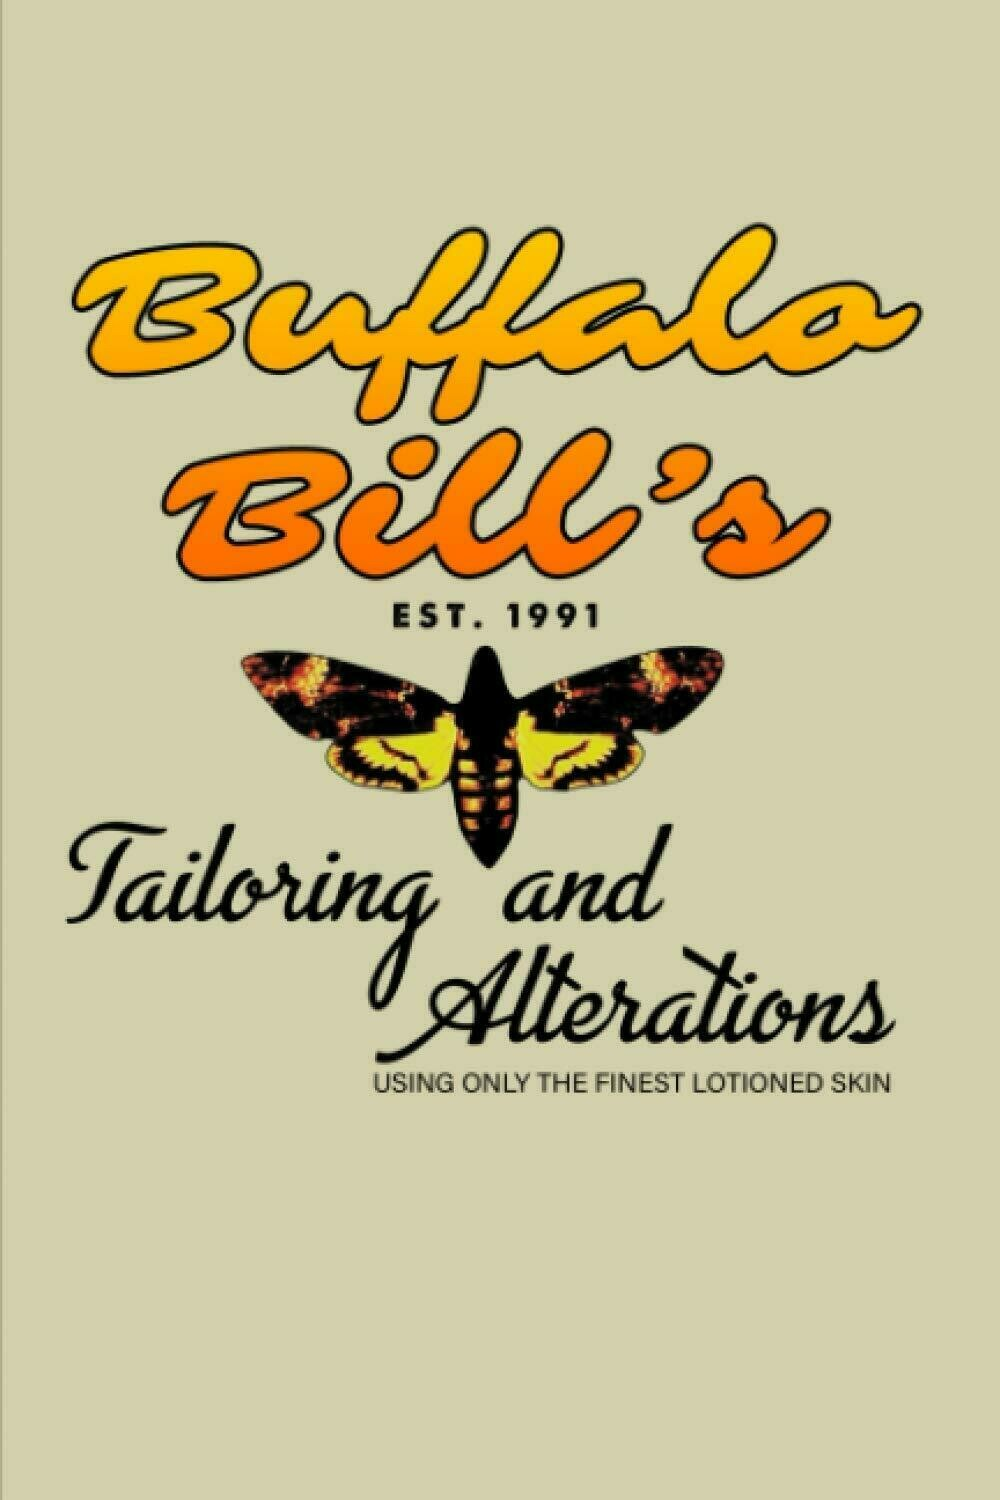 Buffalo Bill's Tailoring and Alternations [THE SILENCE OF THE LAMBS] Luxury Lined Notebook - Journal Diary Writing Paper Note Pad Book Horror Thriller Collectible Movie Prop Replica Hannibal Lecter